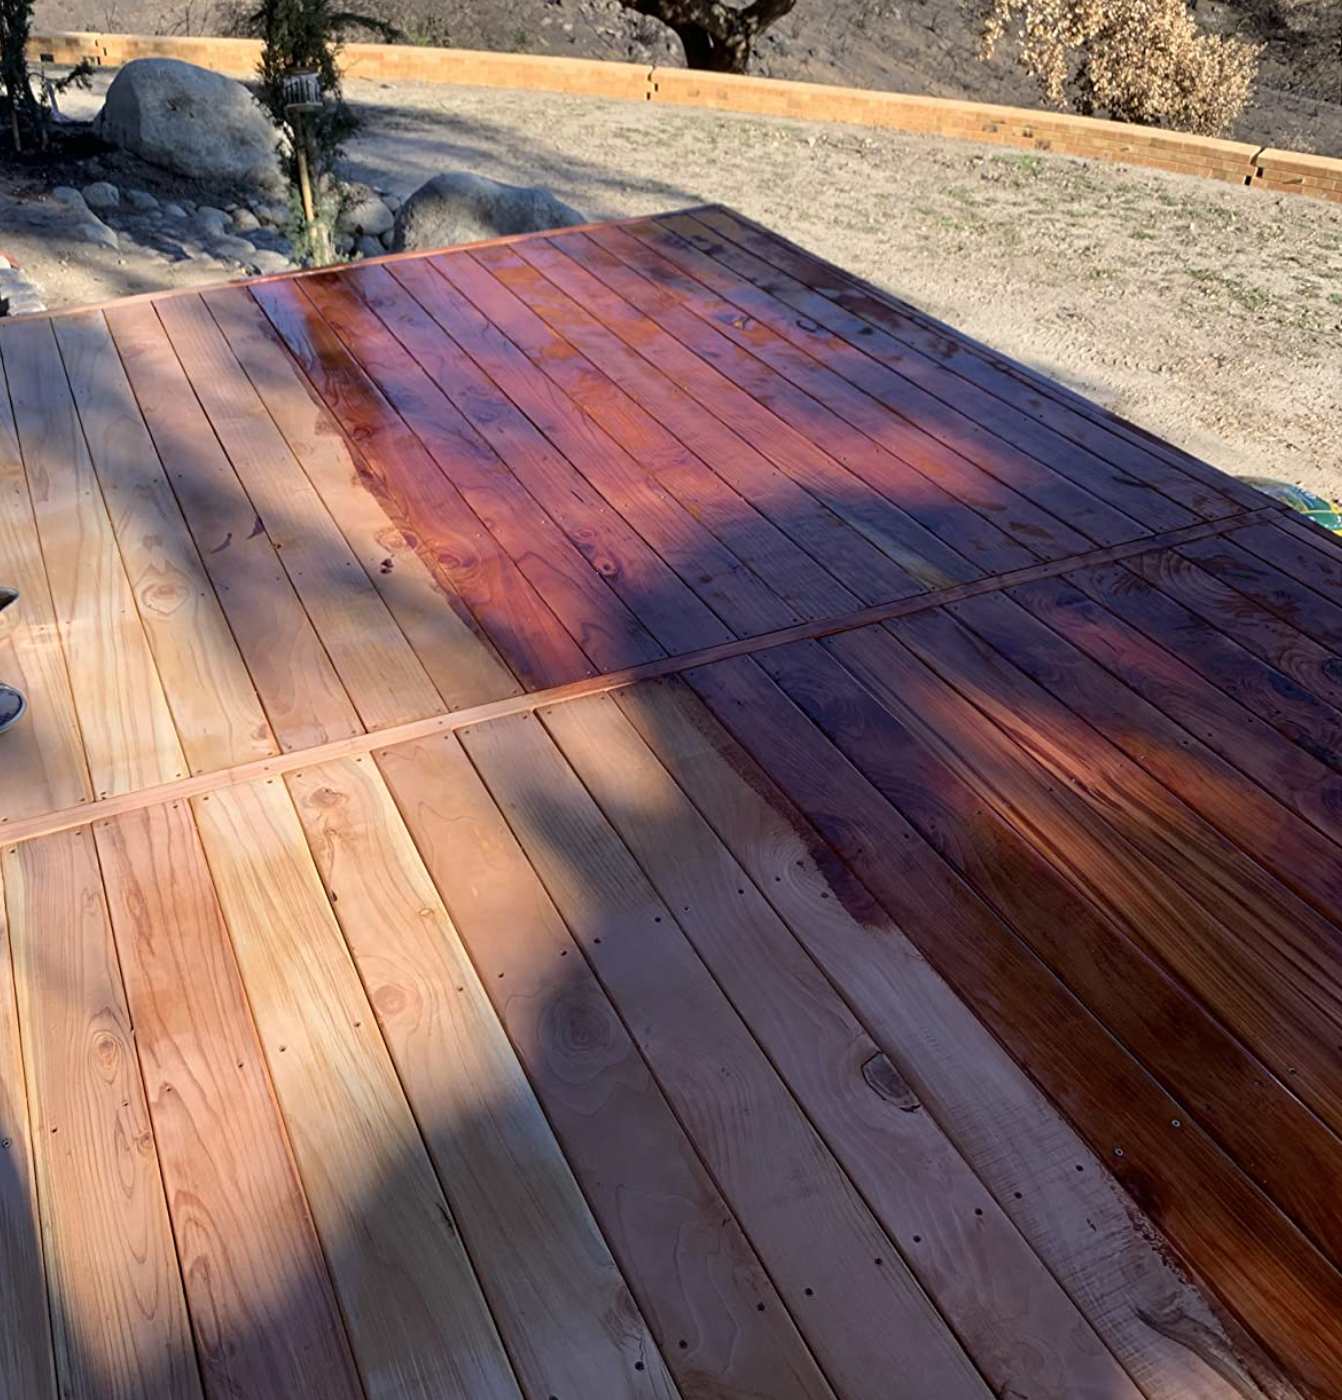 reviewer image of deck half stained, with the half-stained side vibrant and bright